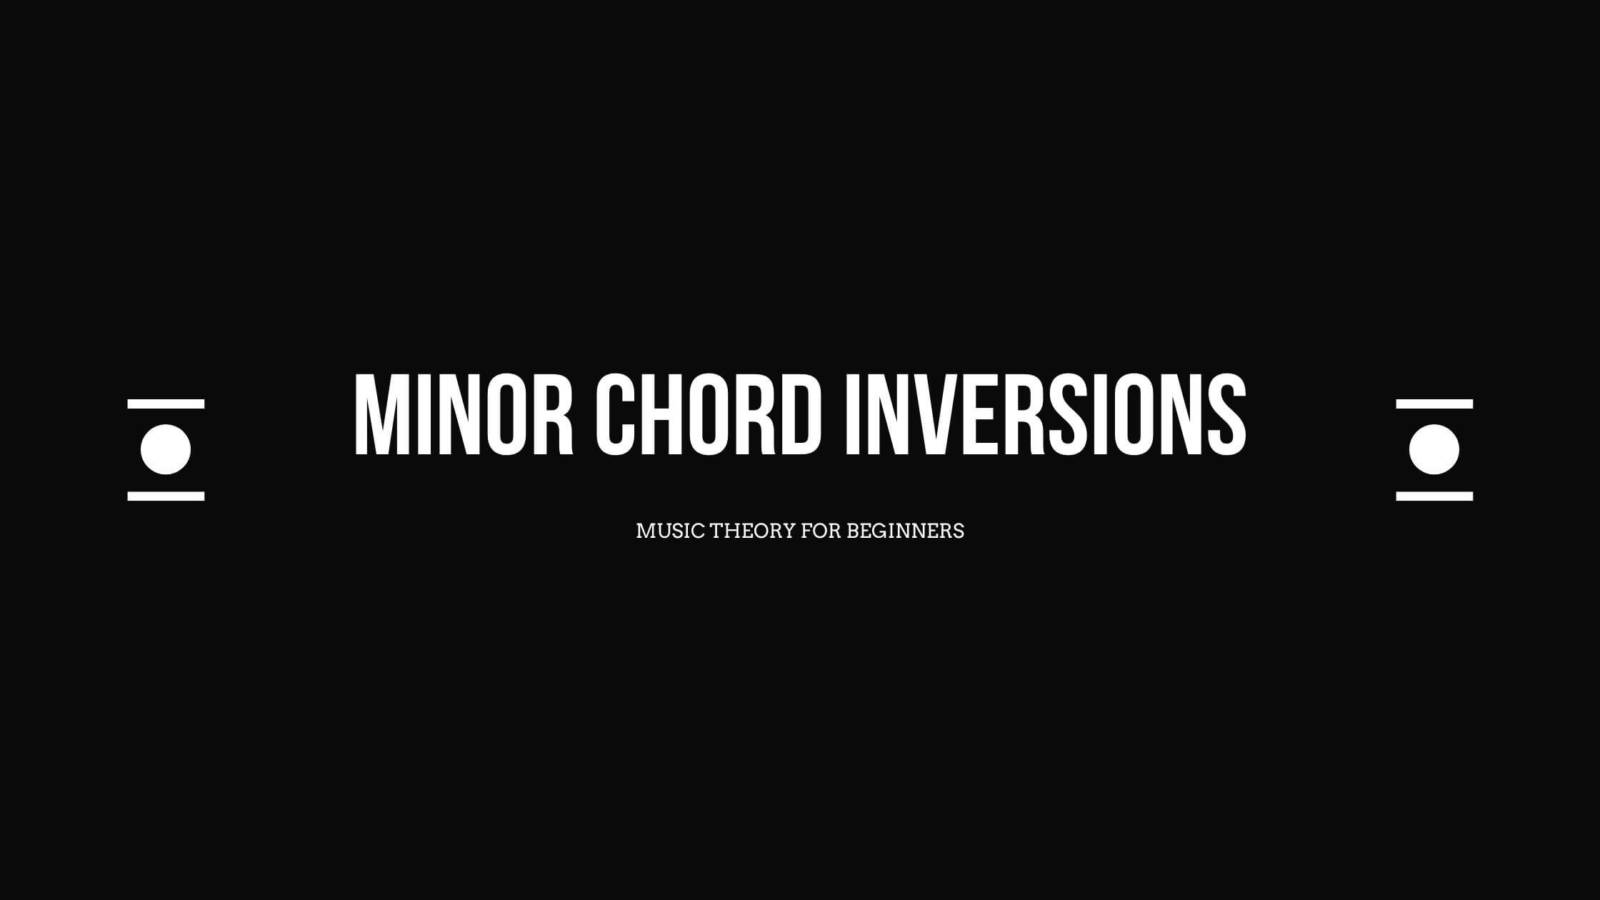 Minor Chord Inversions